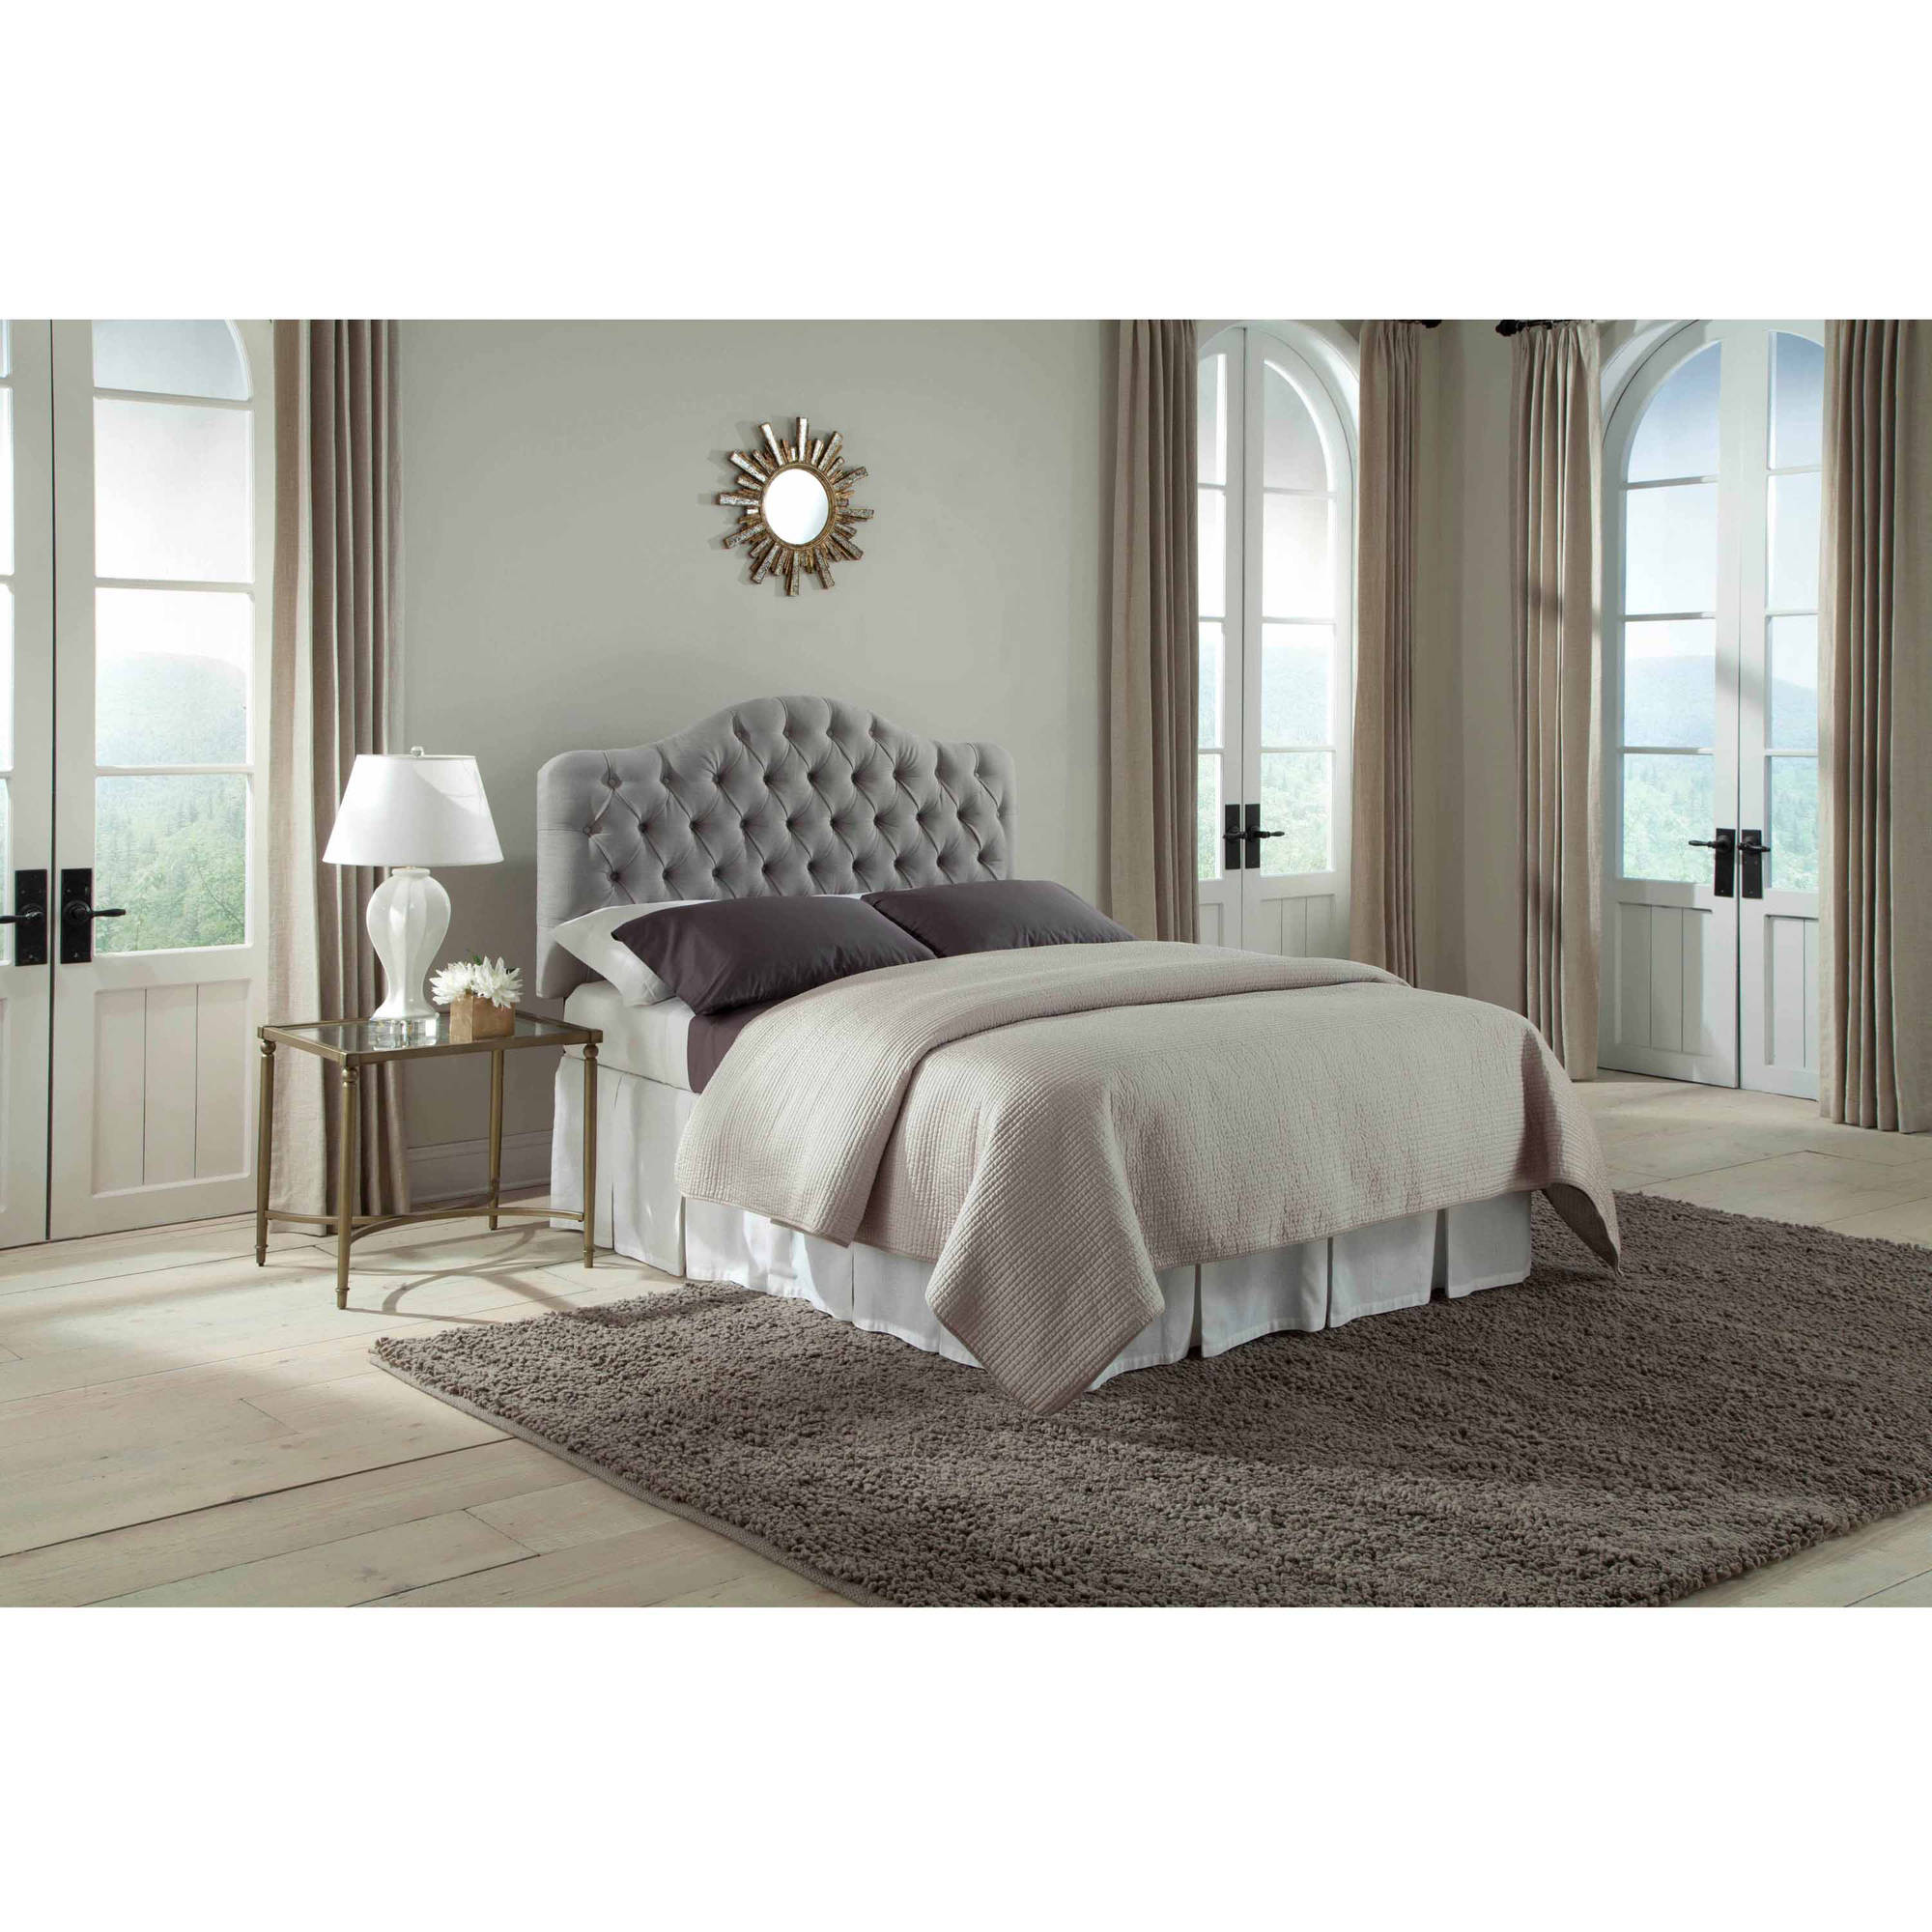 Fashion Bed Group by Leggett & Platt  Martinique Headboard, Multiple Sizes & Colors